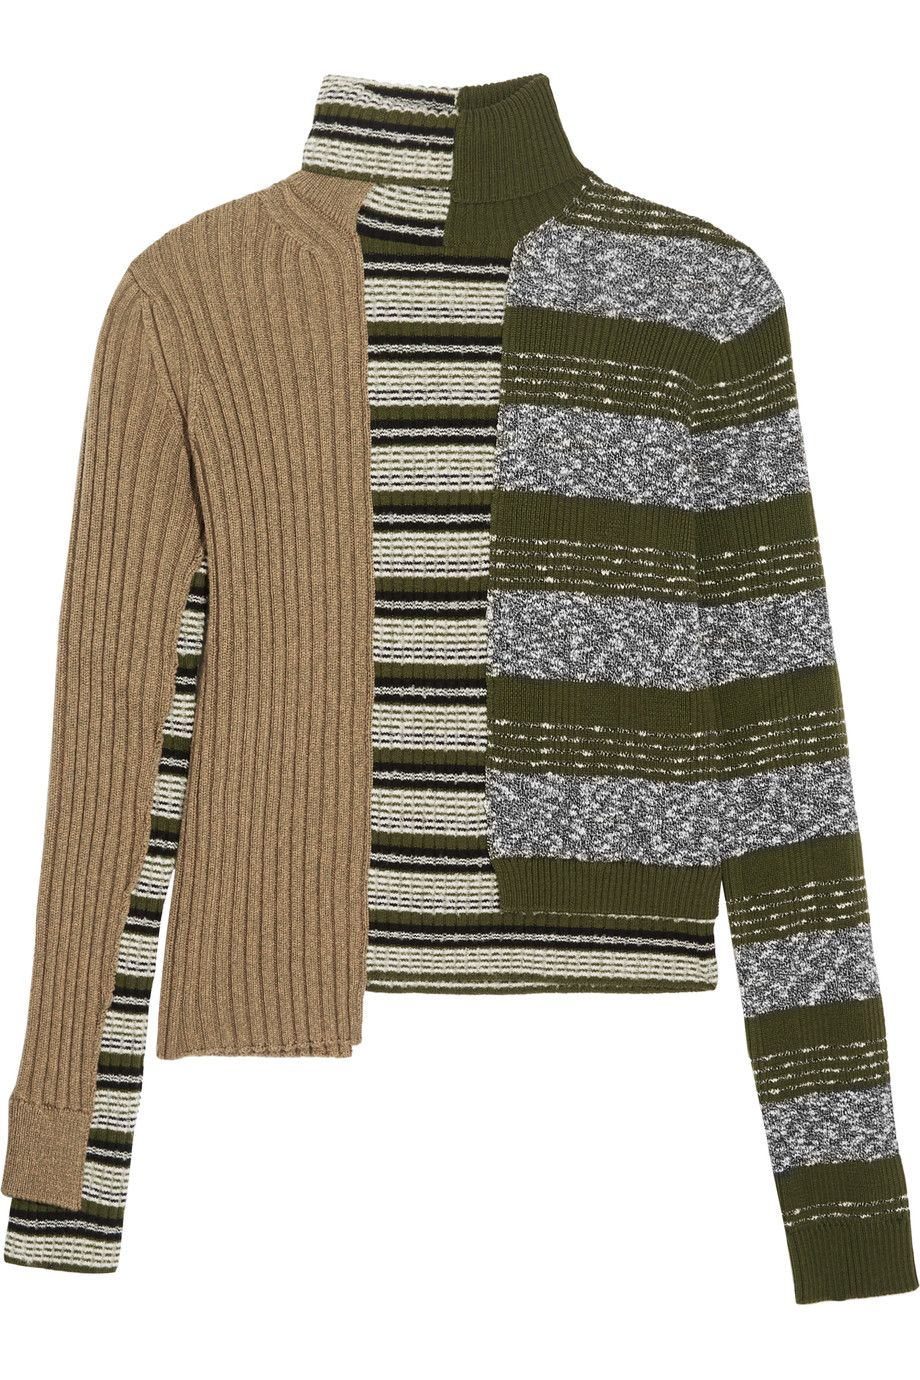 Maison Margiela | Striped ribbed wool-blend turtleneck sweater ...